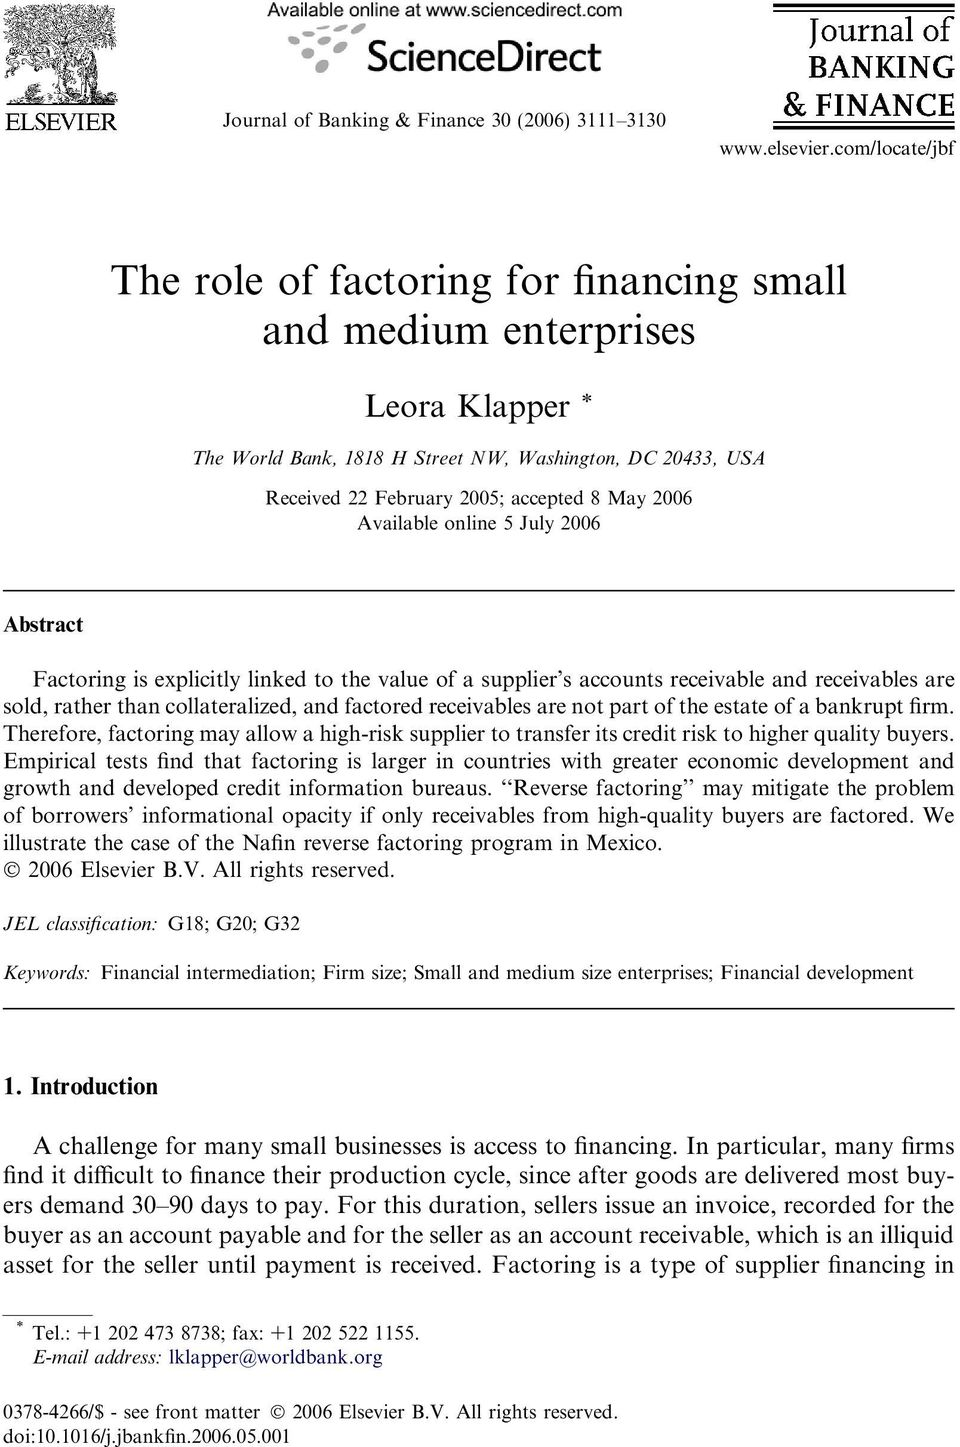 2006 Available online 5 July 2006 Abstract Factoring is explicitly linked to the value of a supplier s accounts receivable and receivables are sold, rather than collateralized, and factored